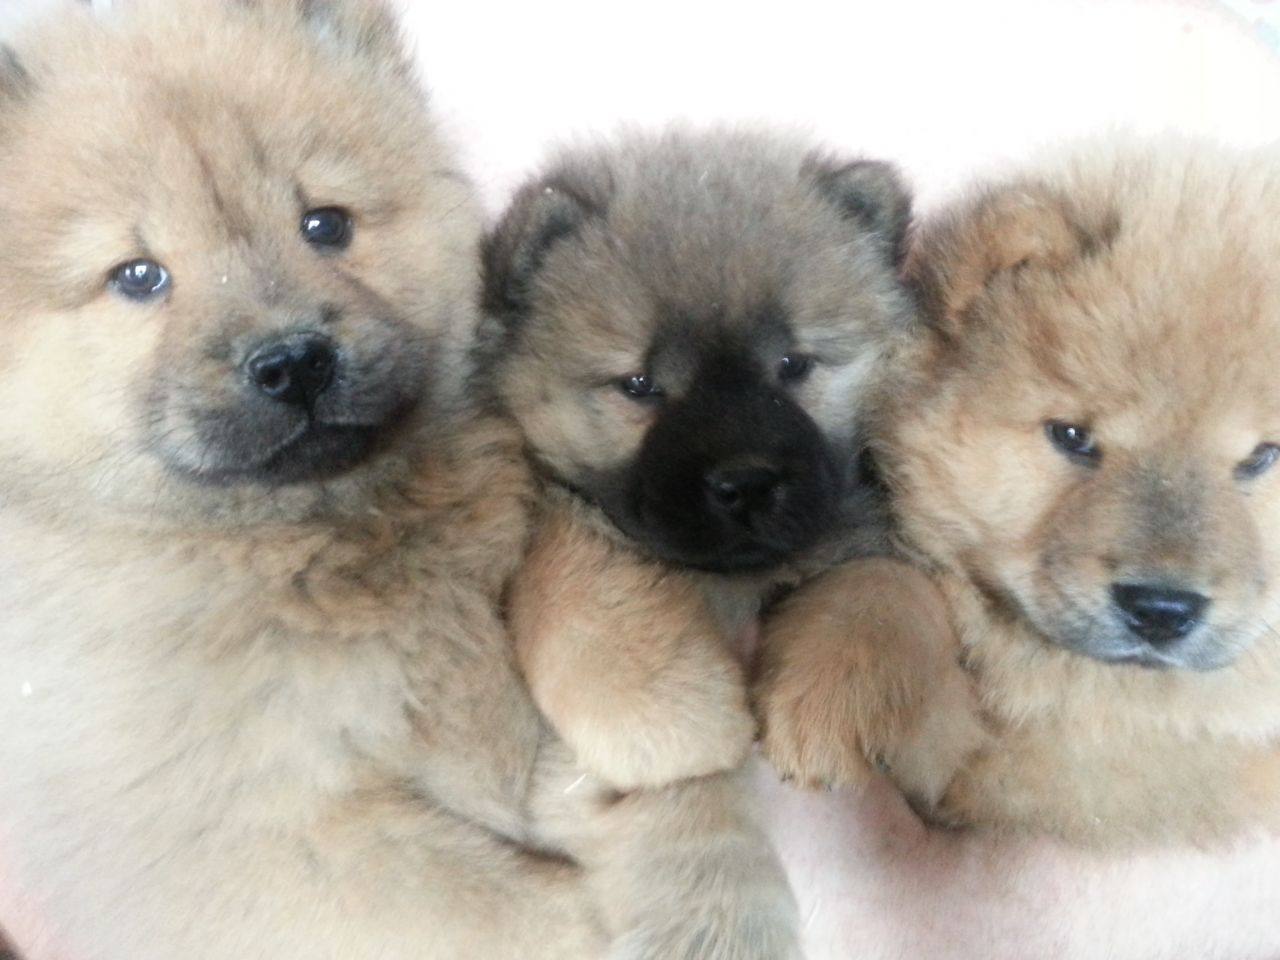 panda chow chow puppies for sale puppy love pinterest